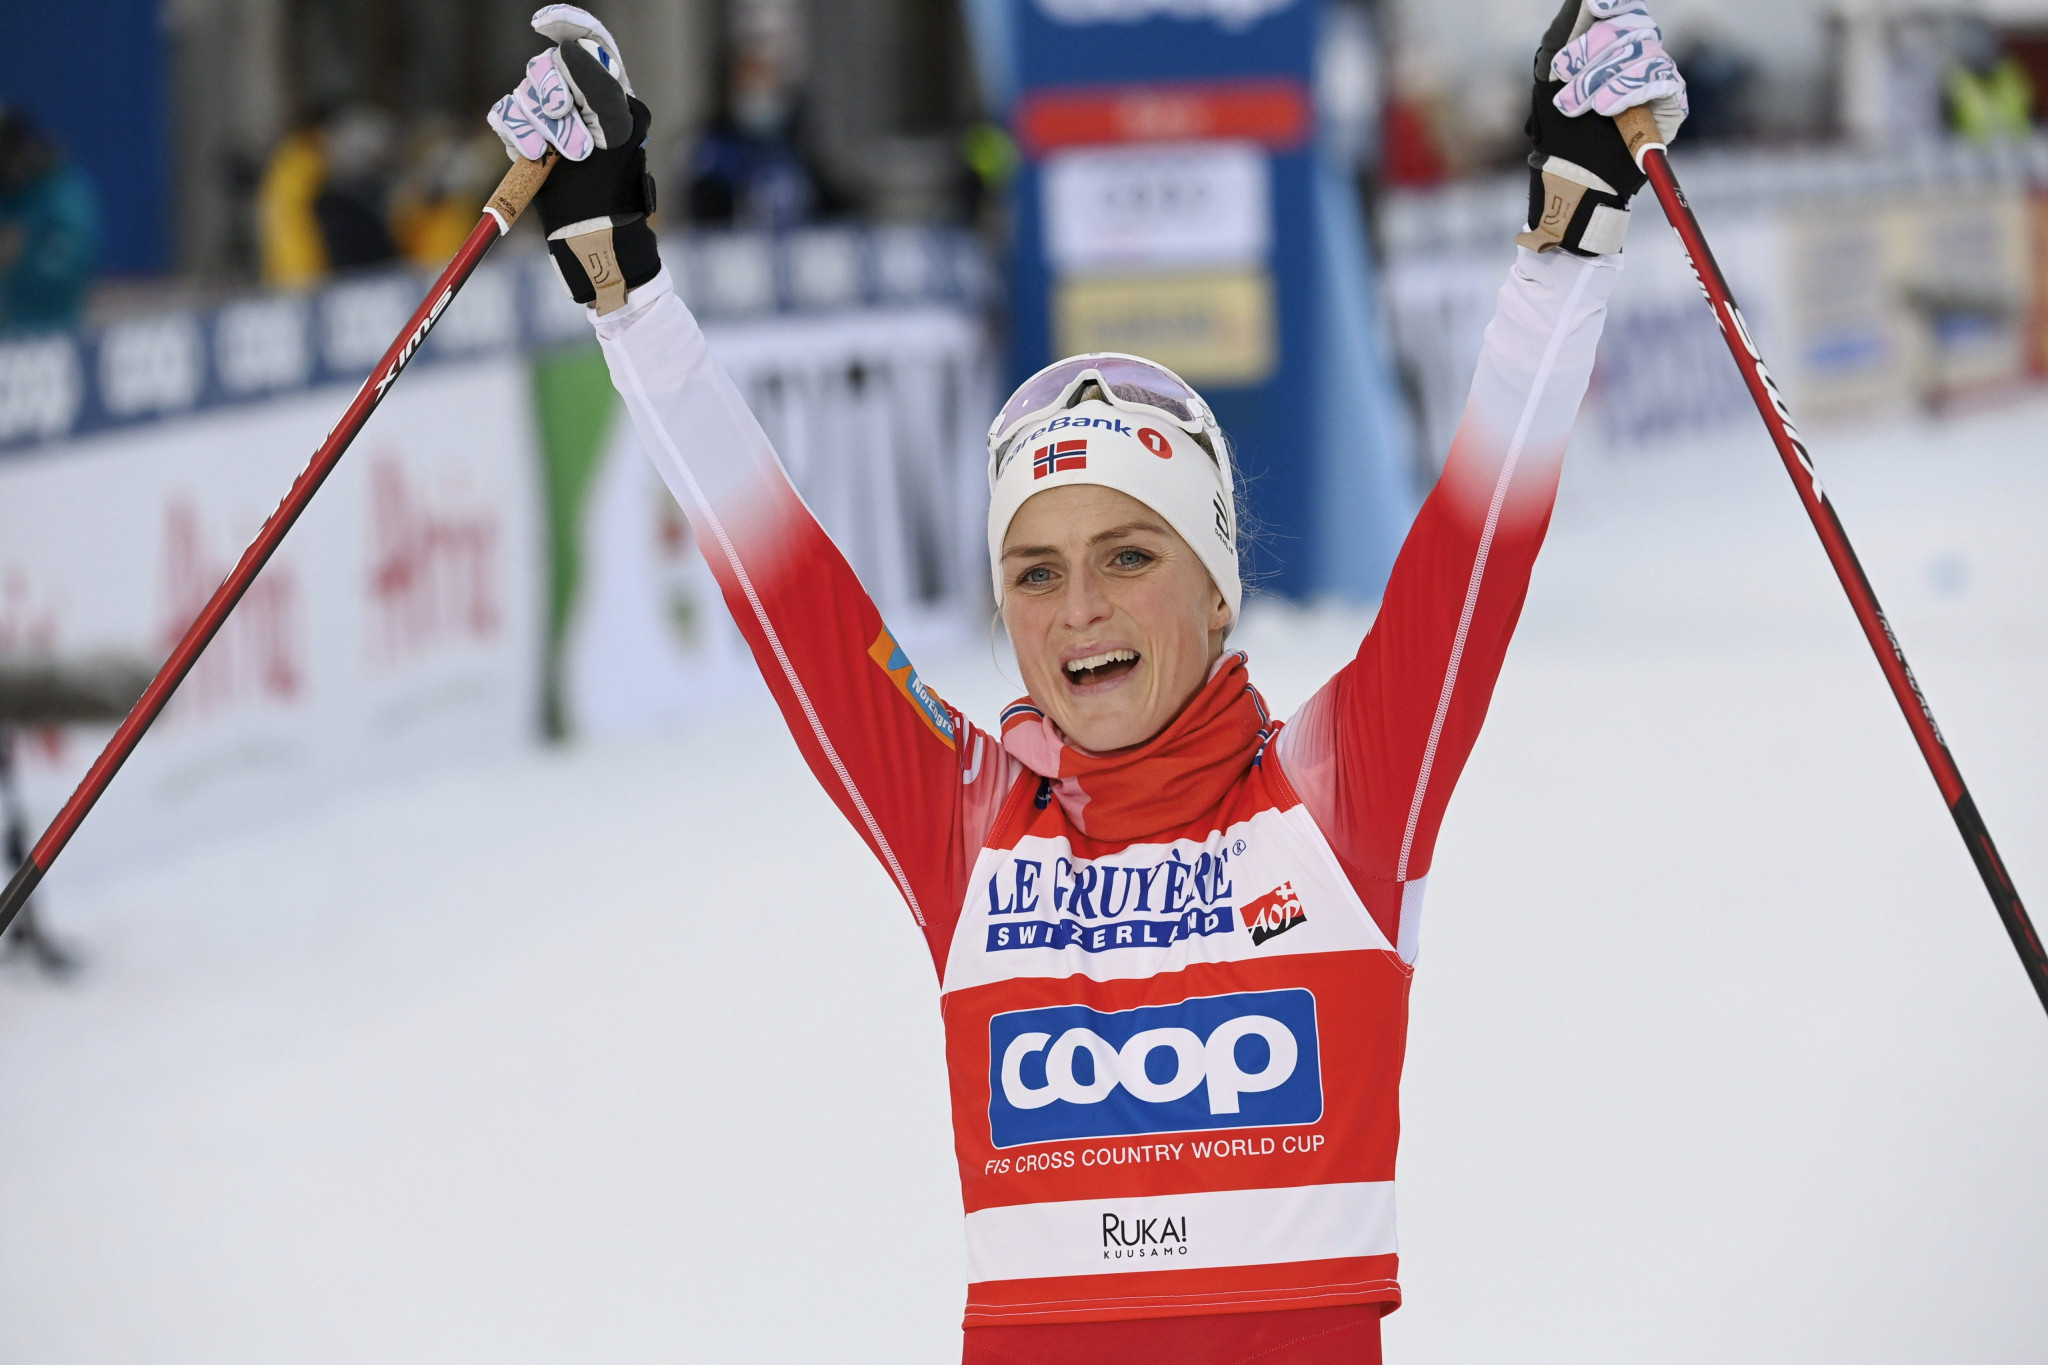 Johaug and Klæbo bag second golds of Cross-Country World Cup weekend in Ruka